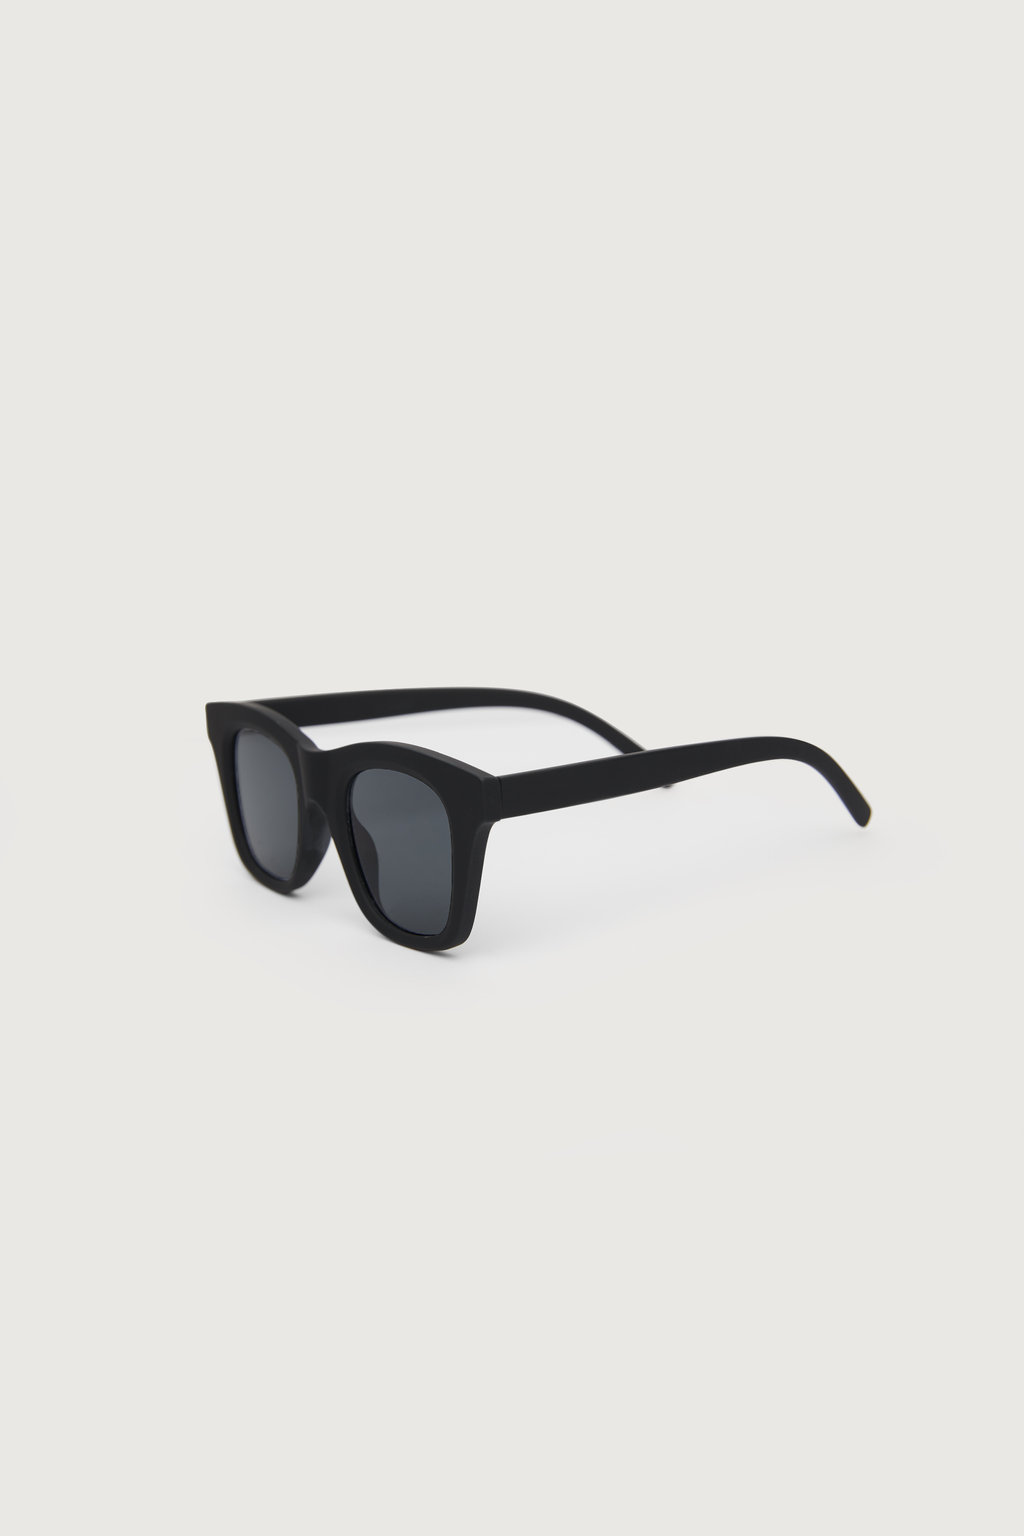 Sunglass 3371 Black 2